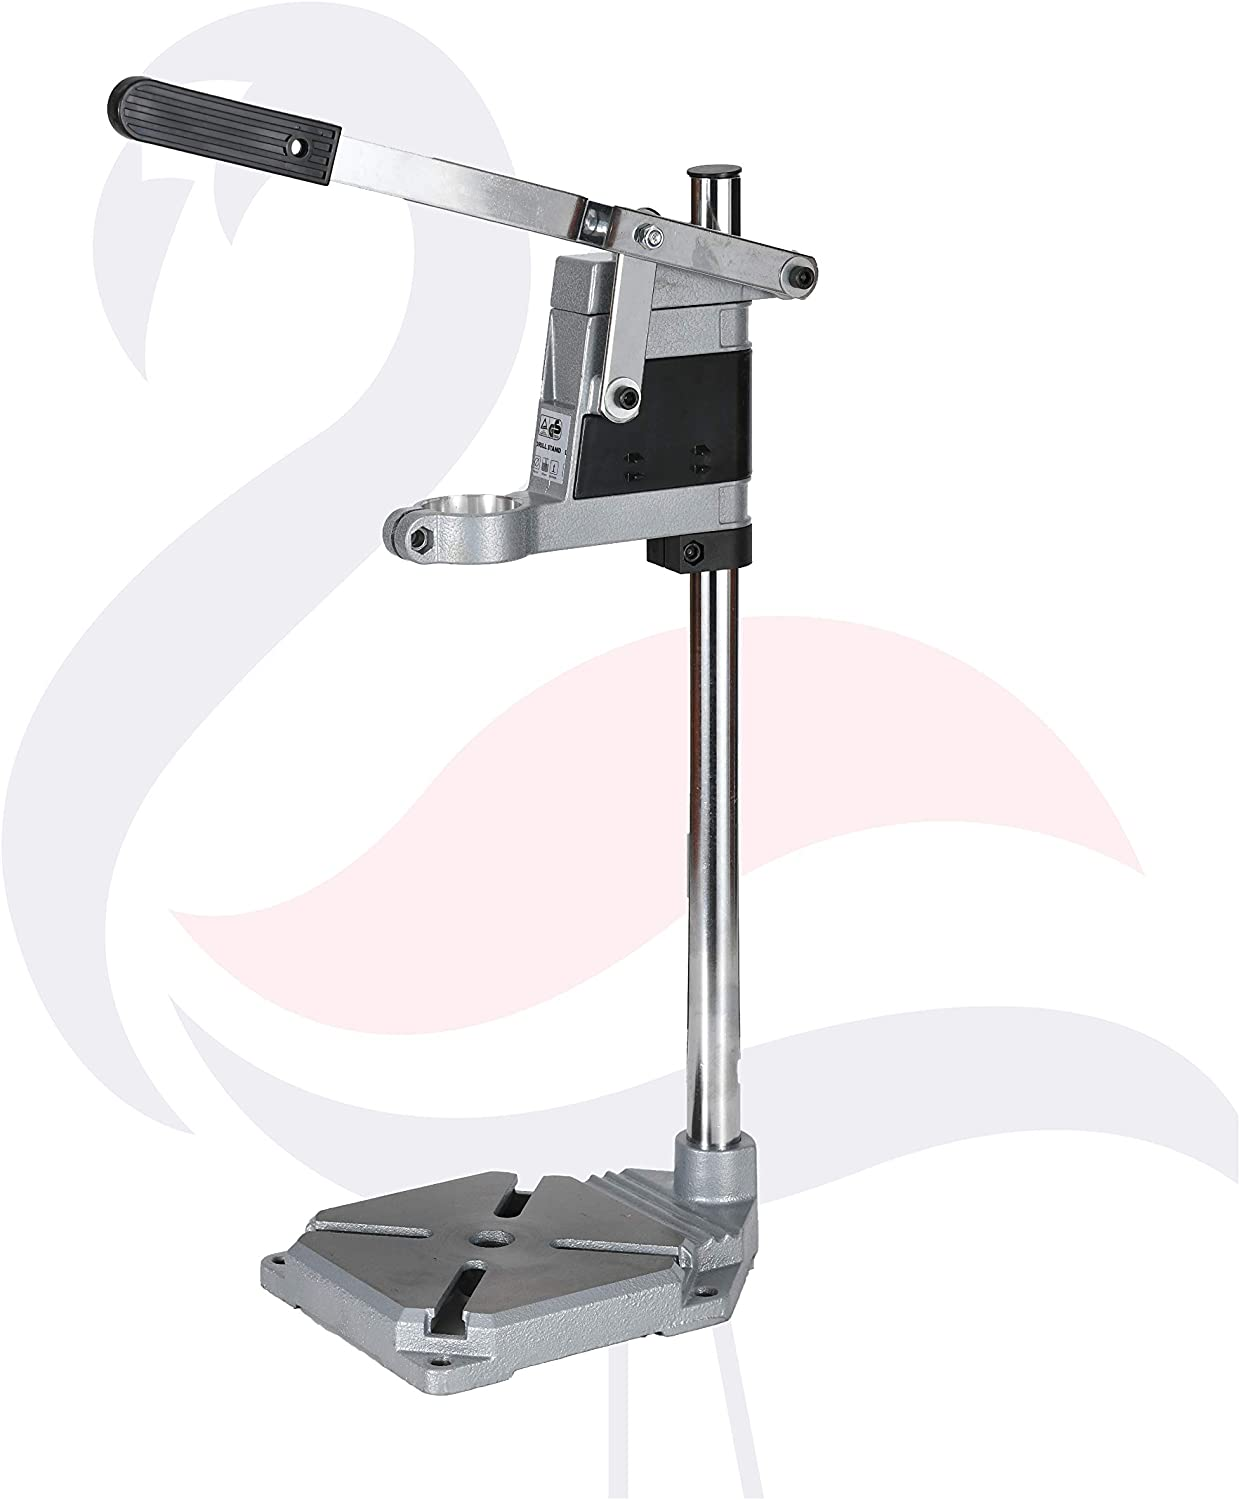 Drill Press Max 54% OFF Stand for Hand Mini Stan Outlet sale feature Portable